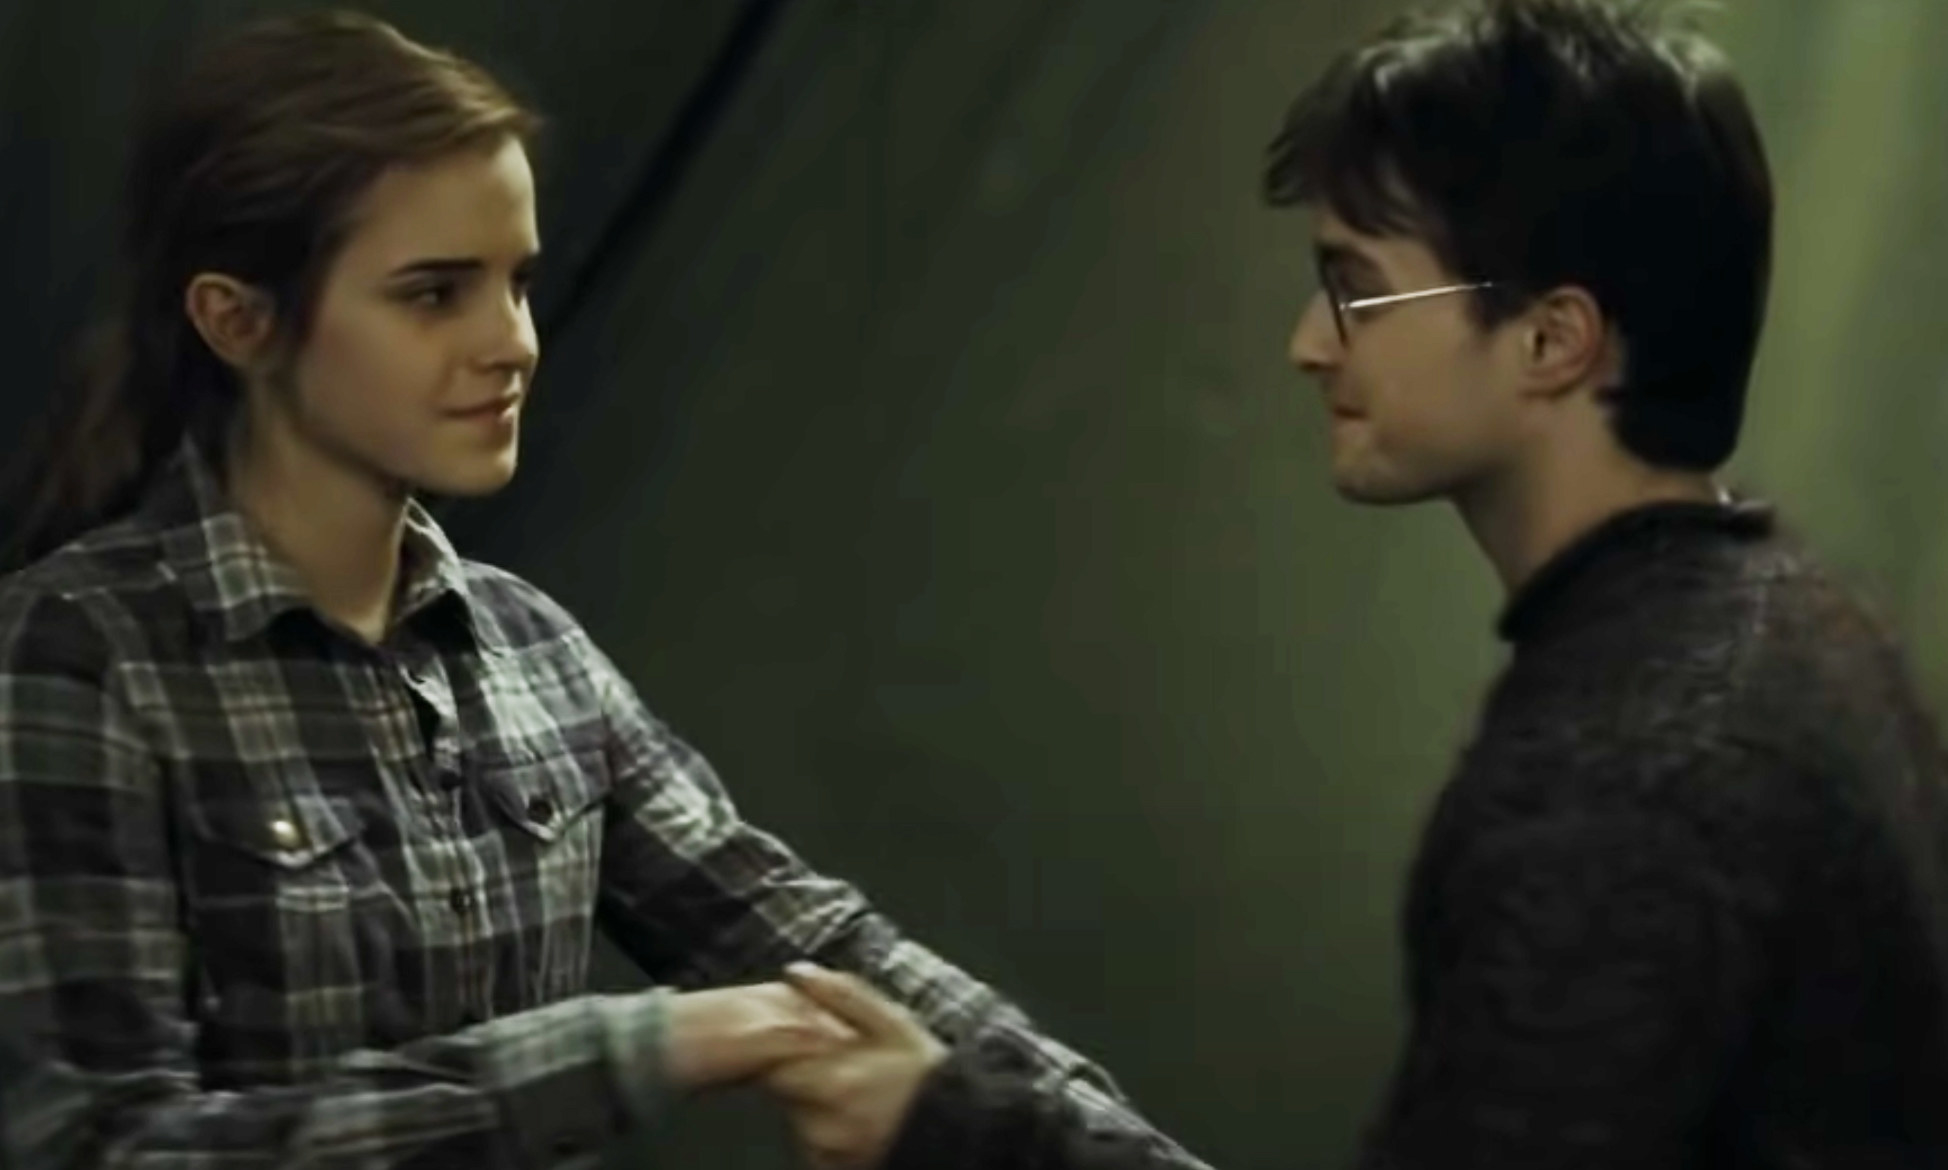 Harry dancing with Hermione